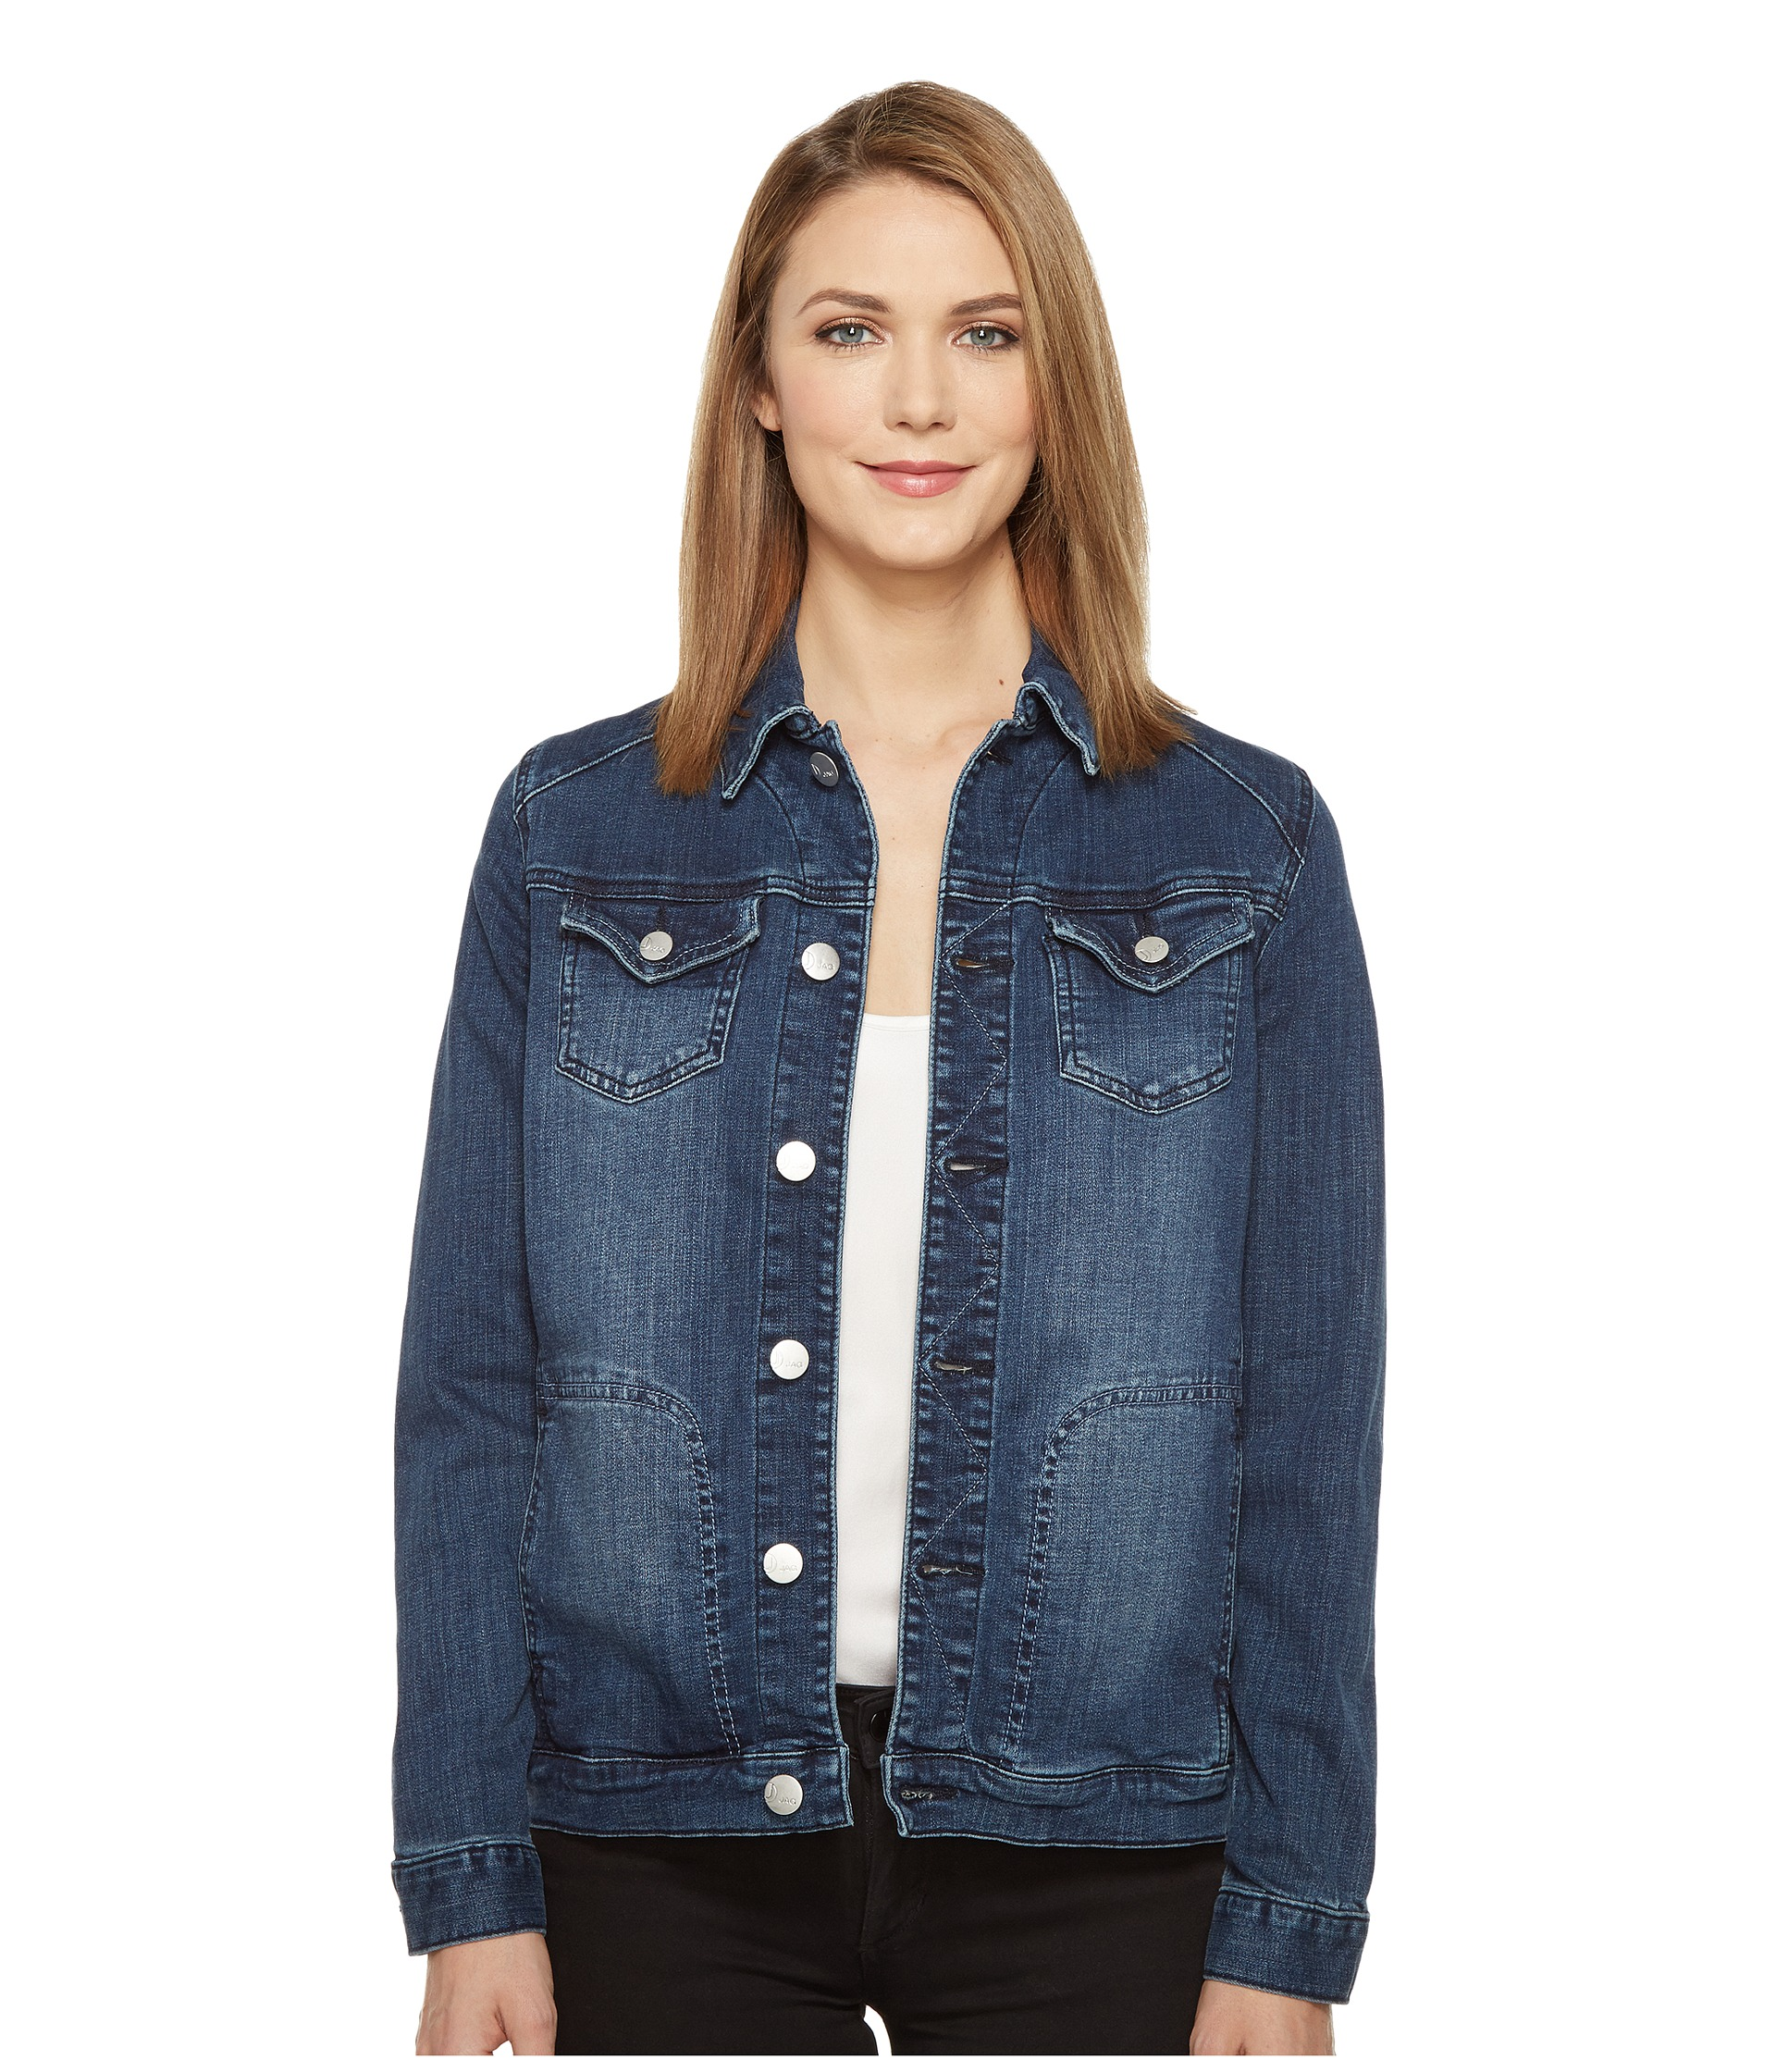 Jag Jeans Lowen Stretch Jacket in Crosshatch Denim in Thorne Blue at Zappos.com